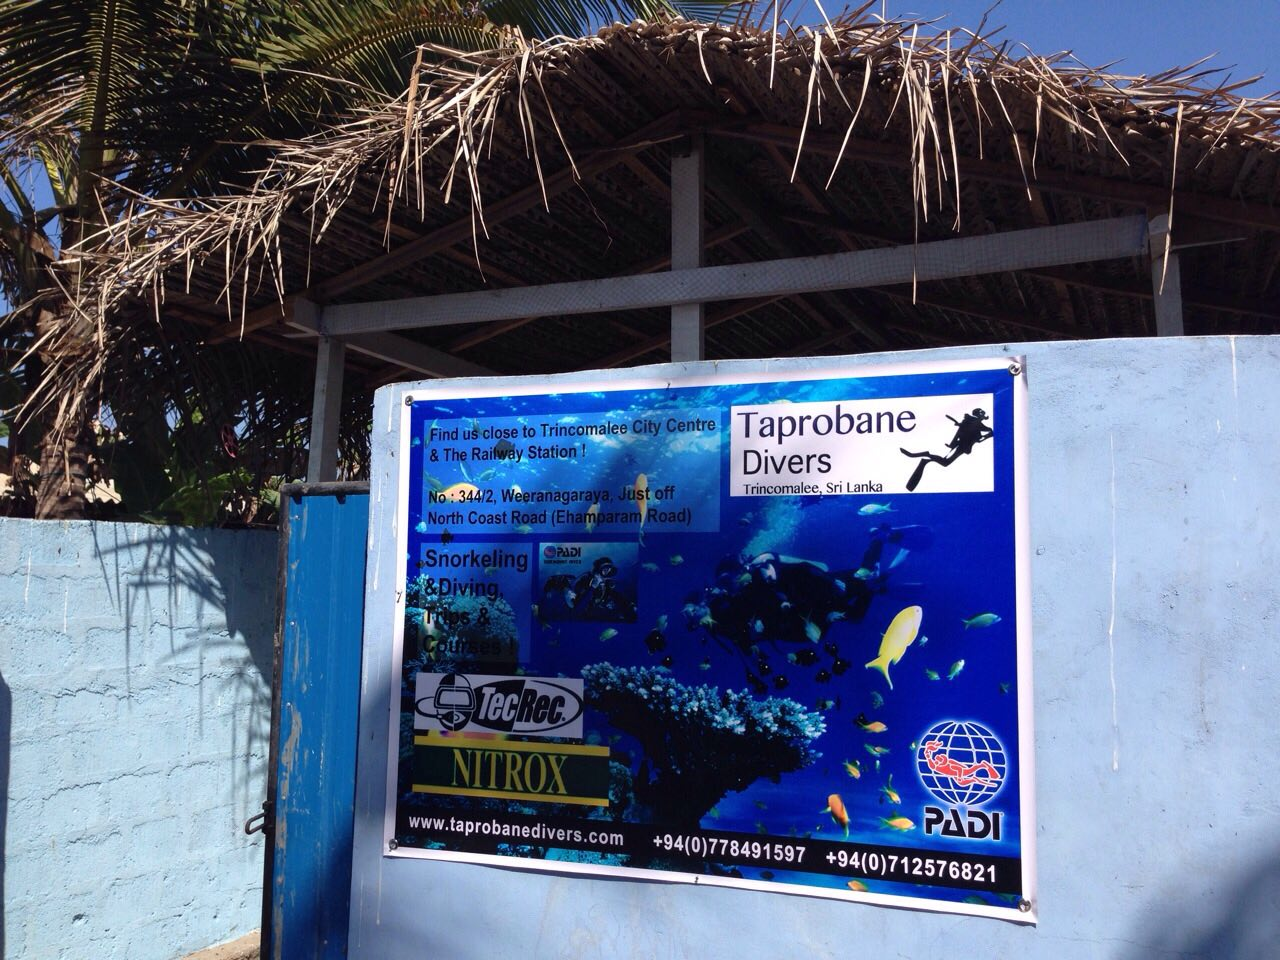 Back entrance to dive centre